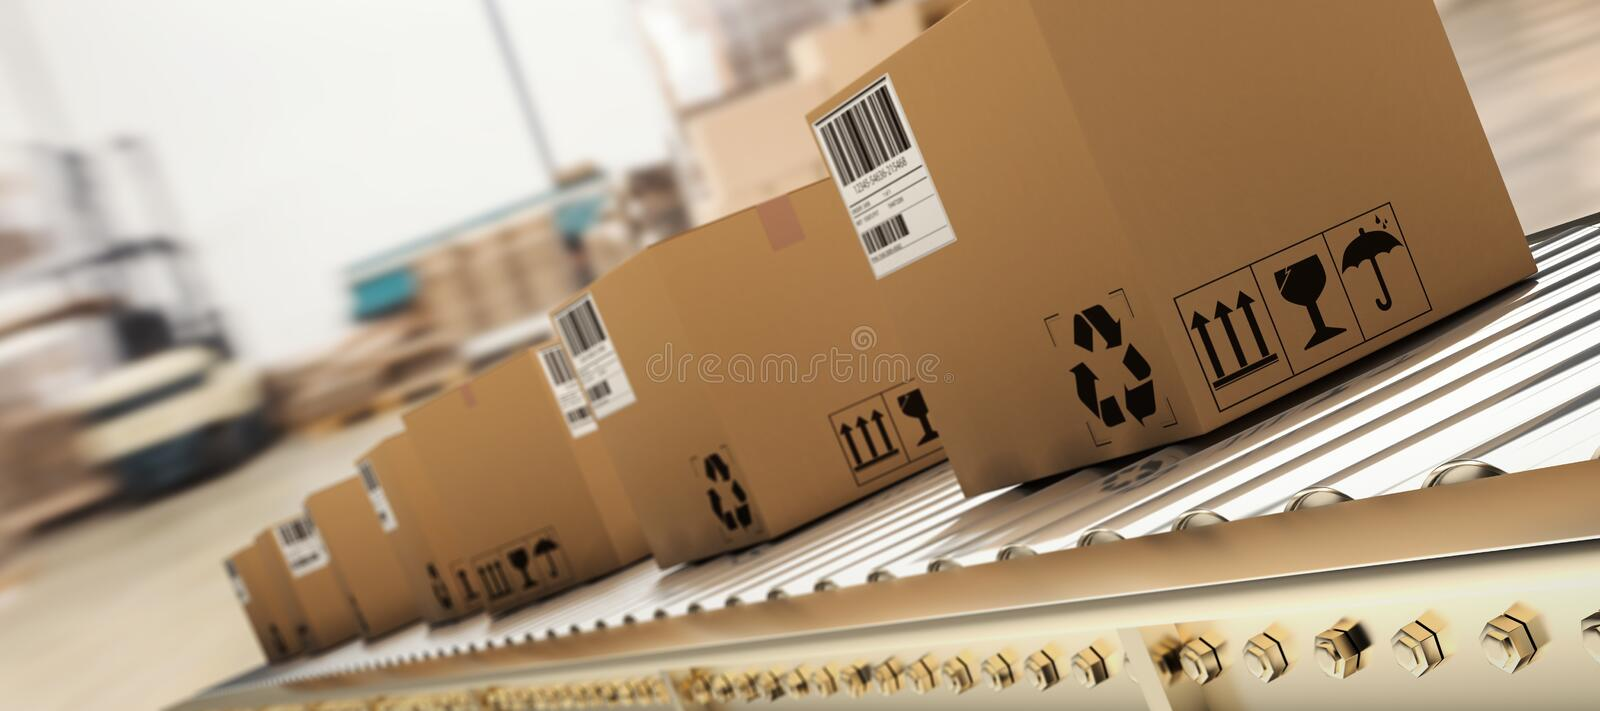 Composite image of packed courier on production line. Packed courier on production line against cardboard boxes in warehouse stock illustration